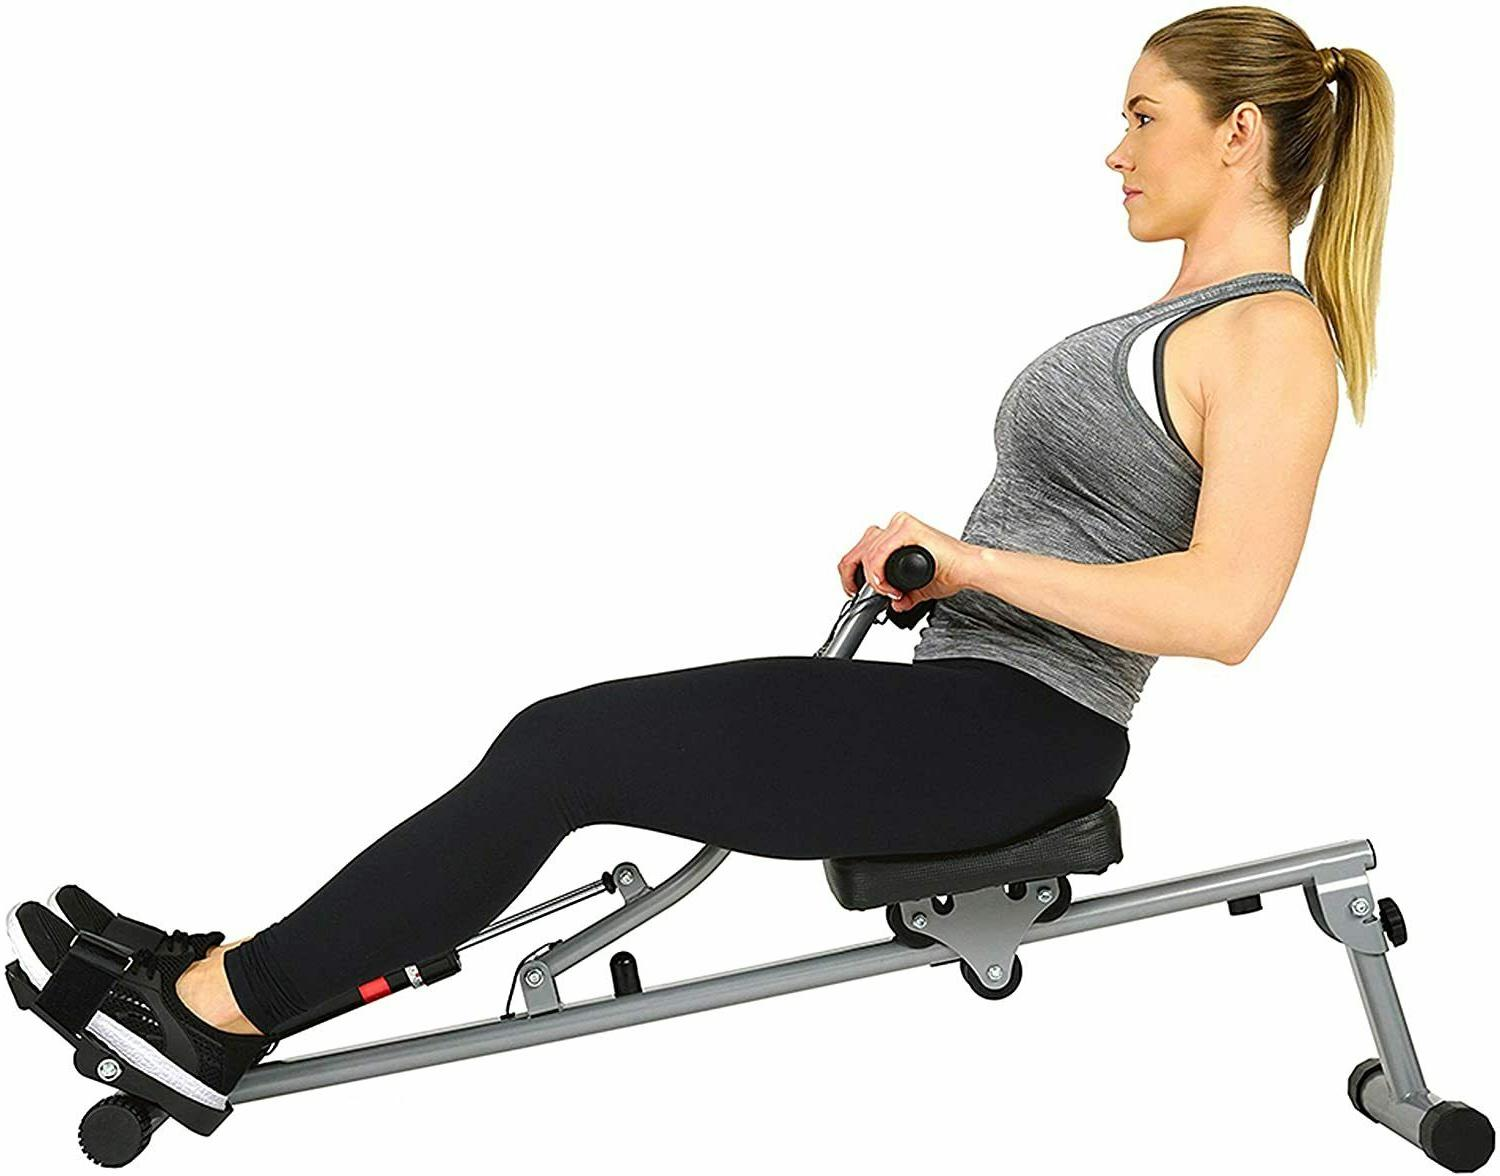 Sunny & Fitness SF-RW1205 12 Resistance Rowing